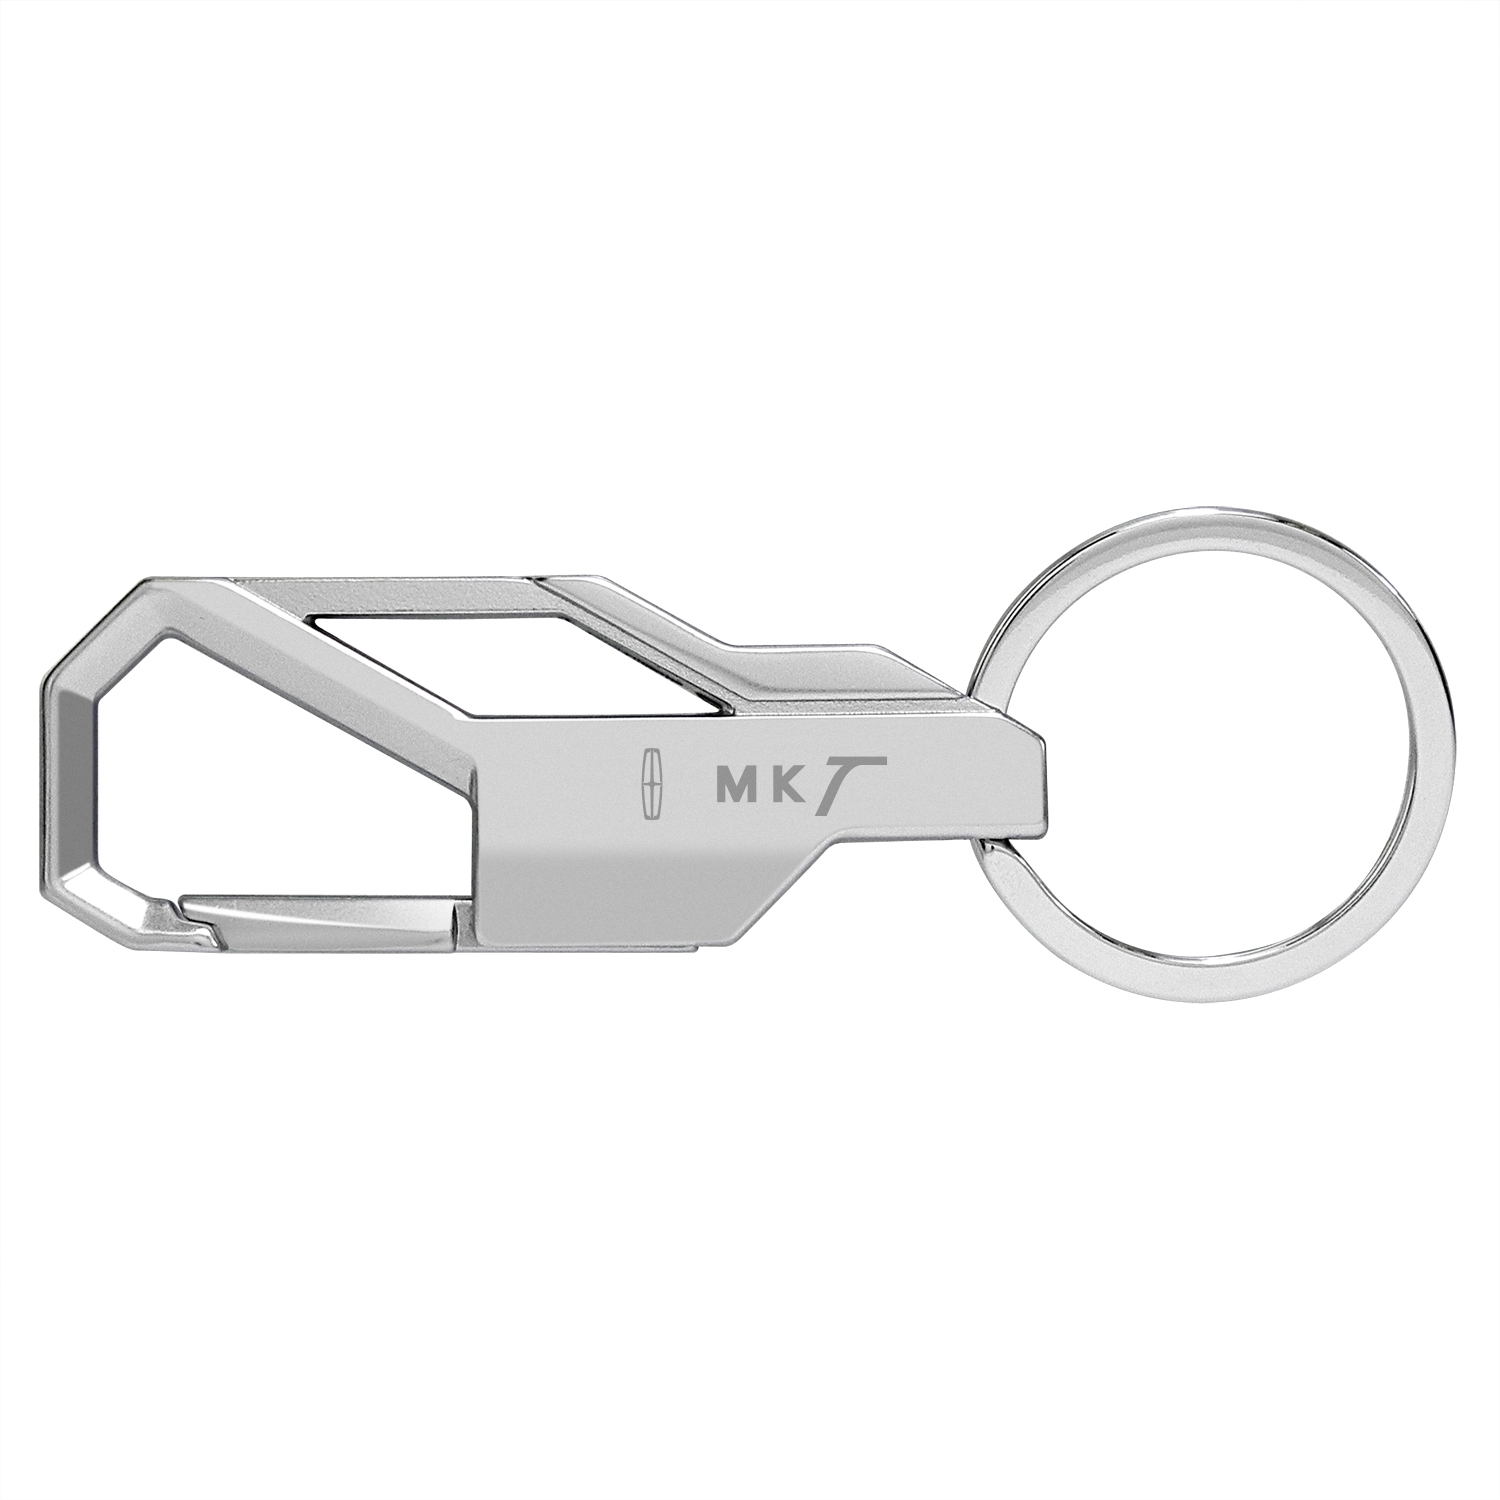 Lincoln MKT Silver Snap Hook Metal Key Chain